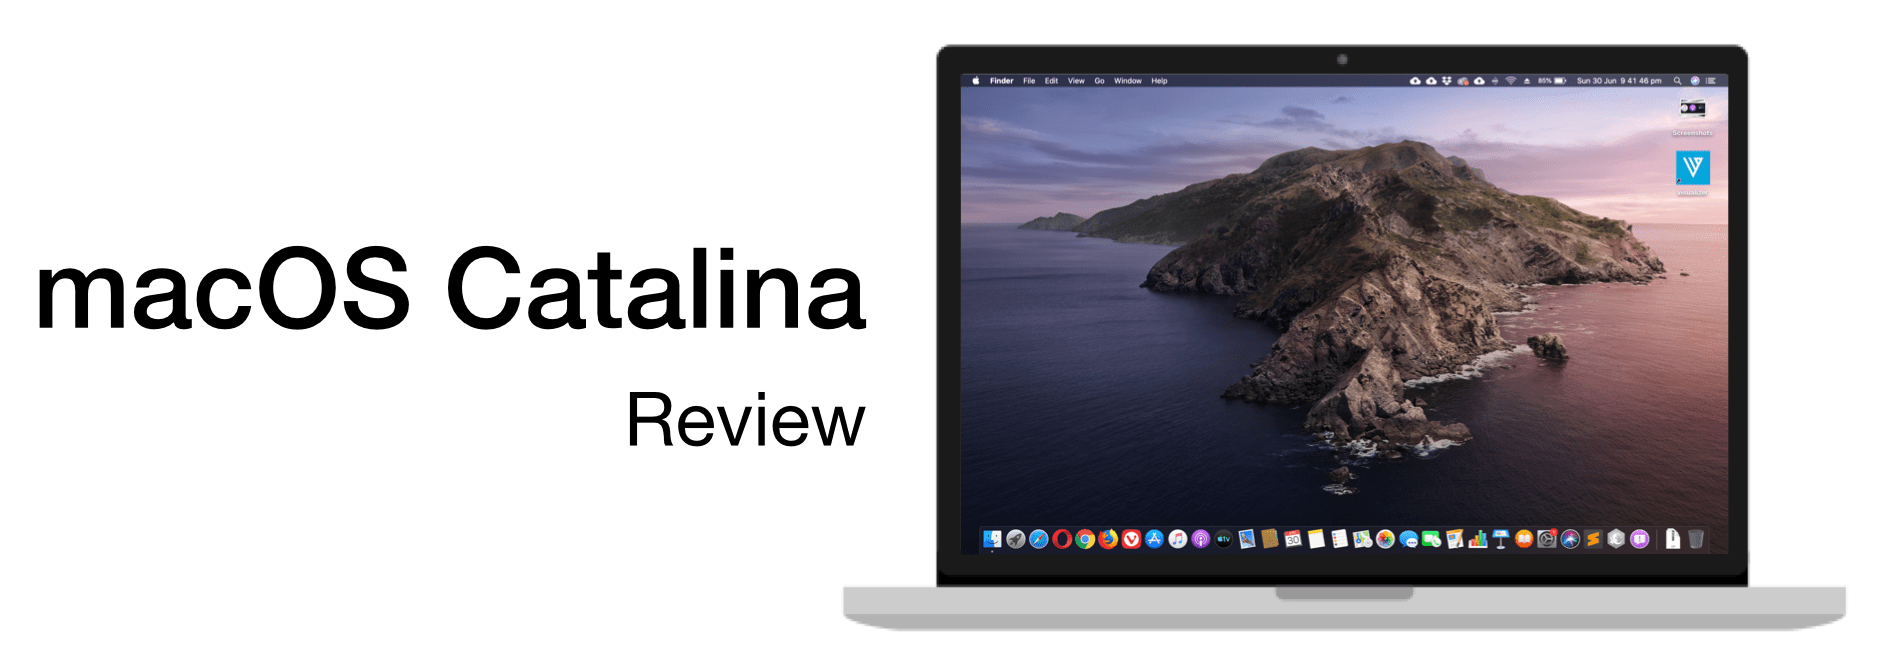 Review for macOS Catalina (Beta) by Apple